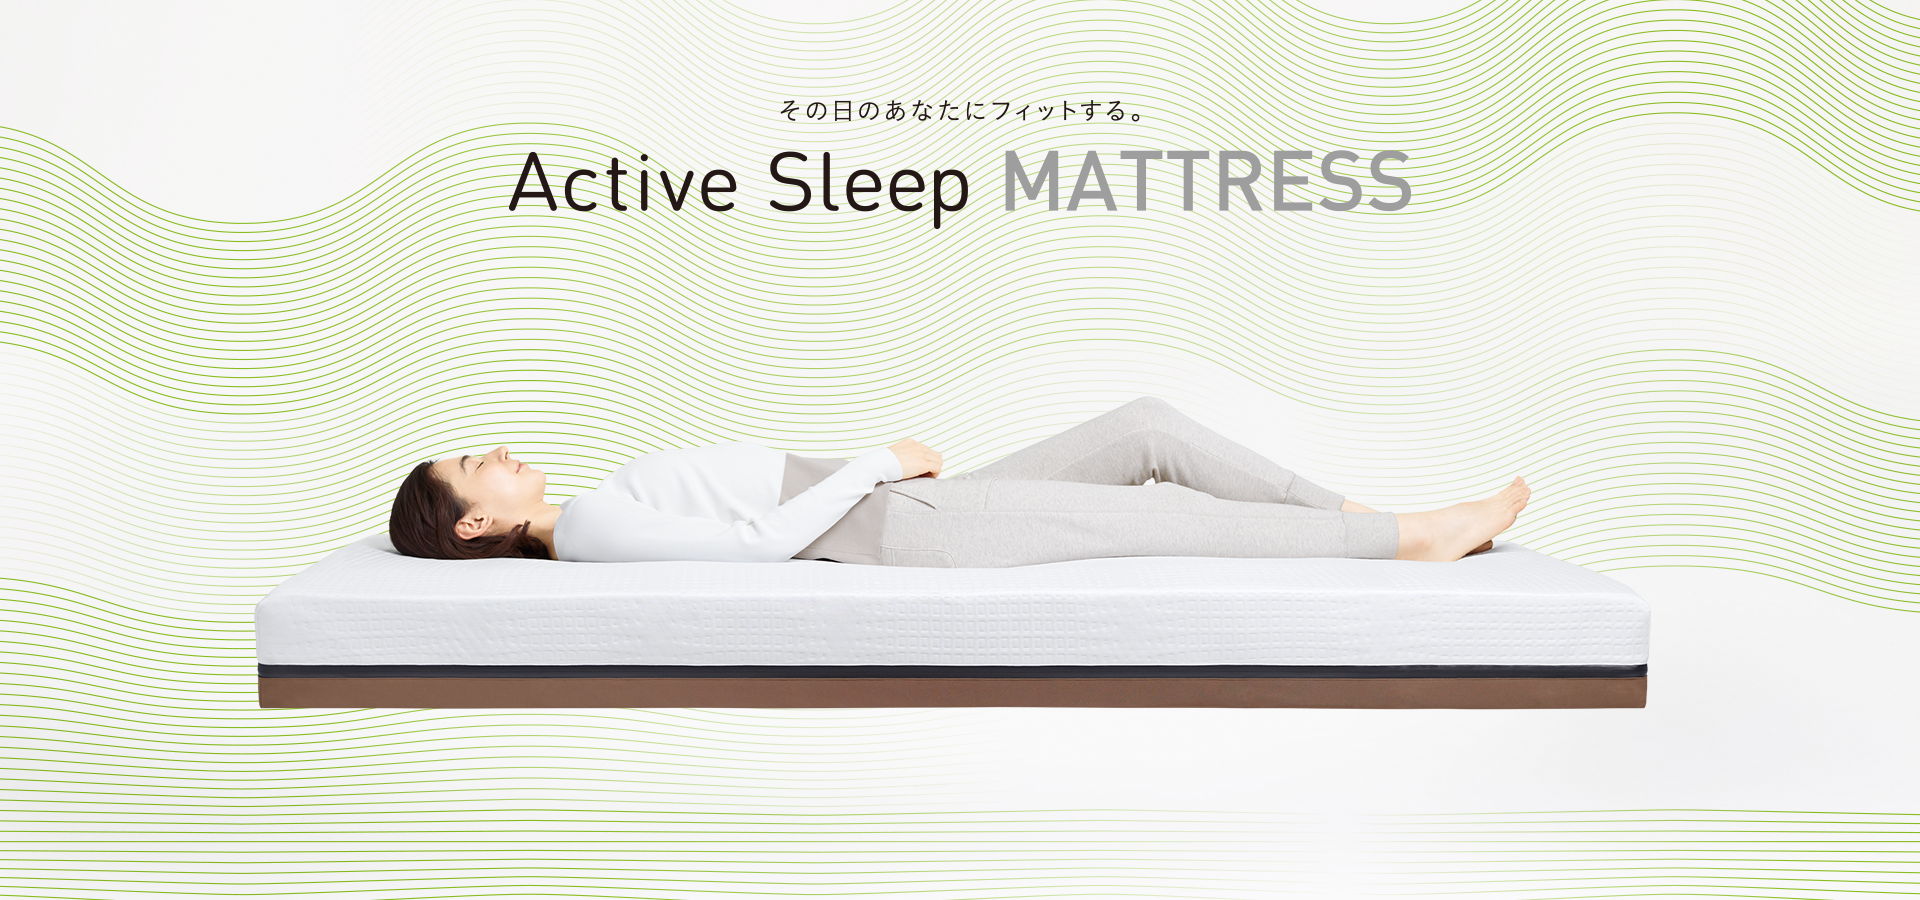 Active Sleep Mattress